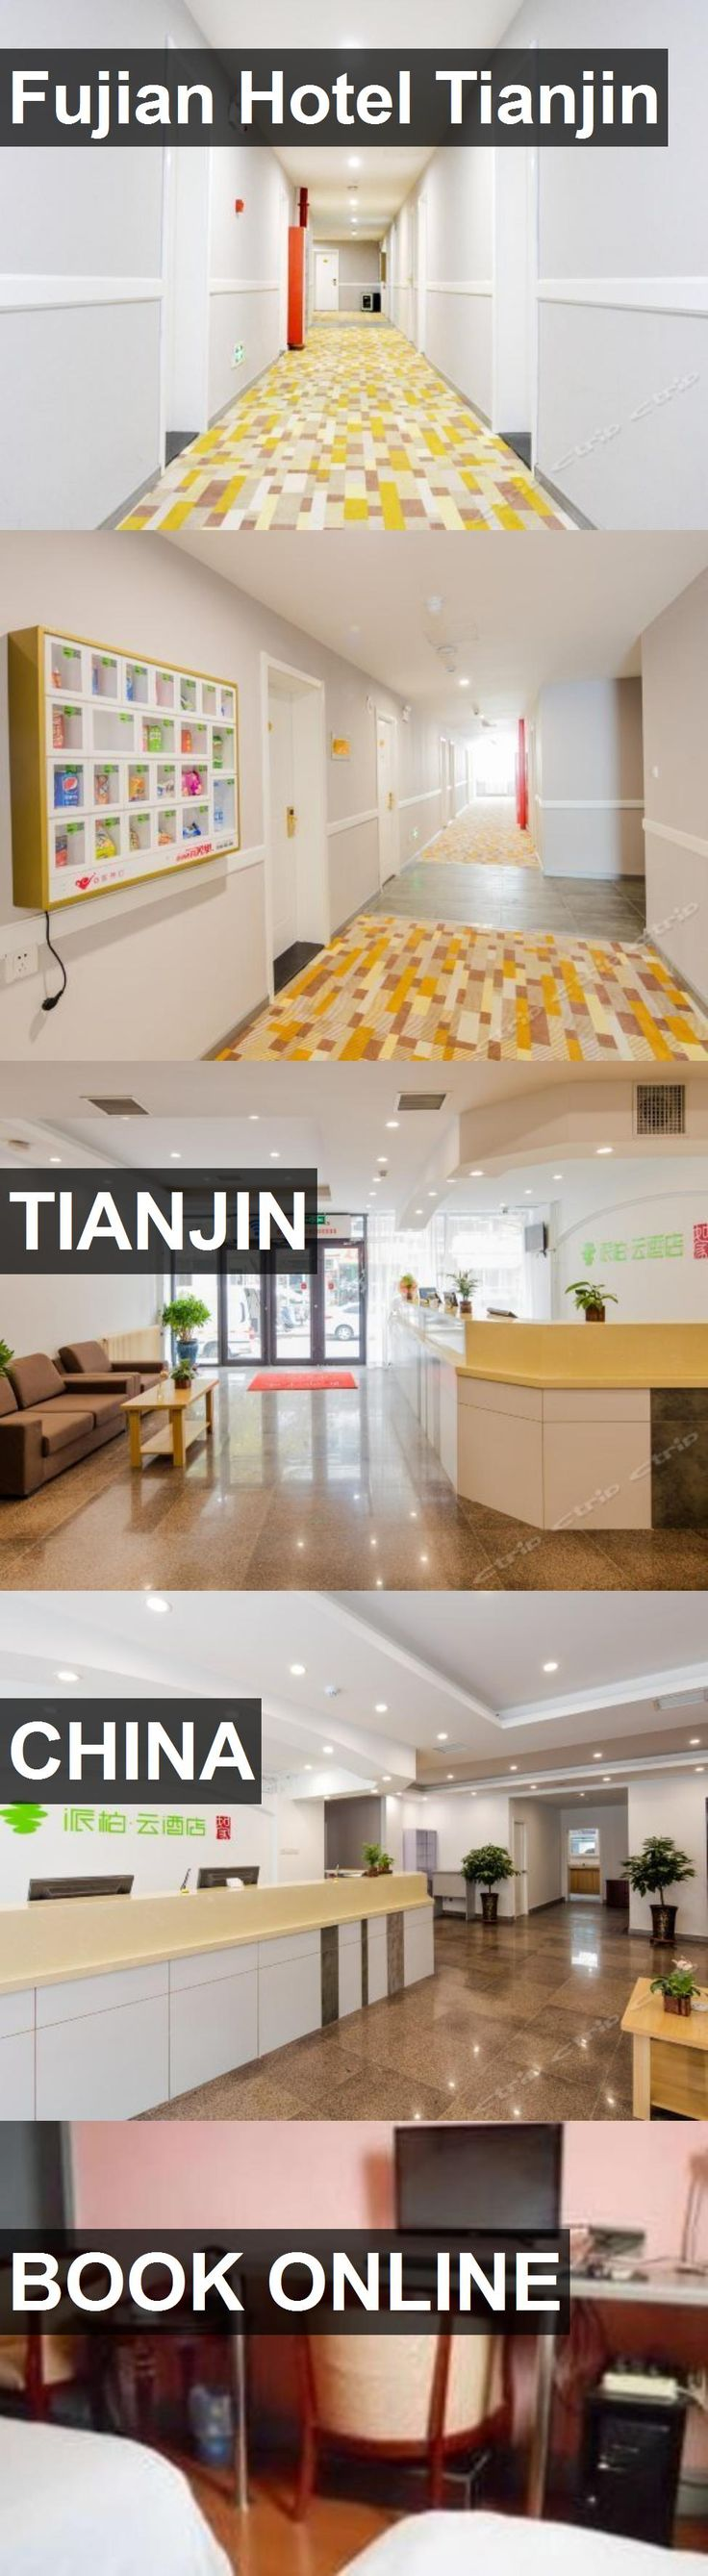 Fujian Hotel Tianjin in Tianjin, China. For more information, photos, reviews and best prices please follow the link. #China #Tianjin #travel #vacation #hotel